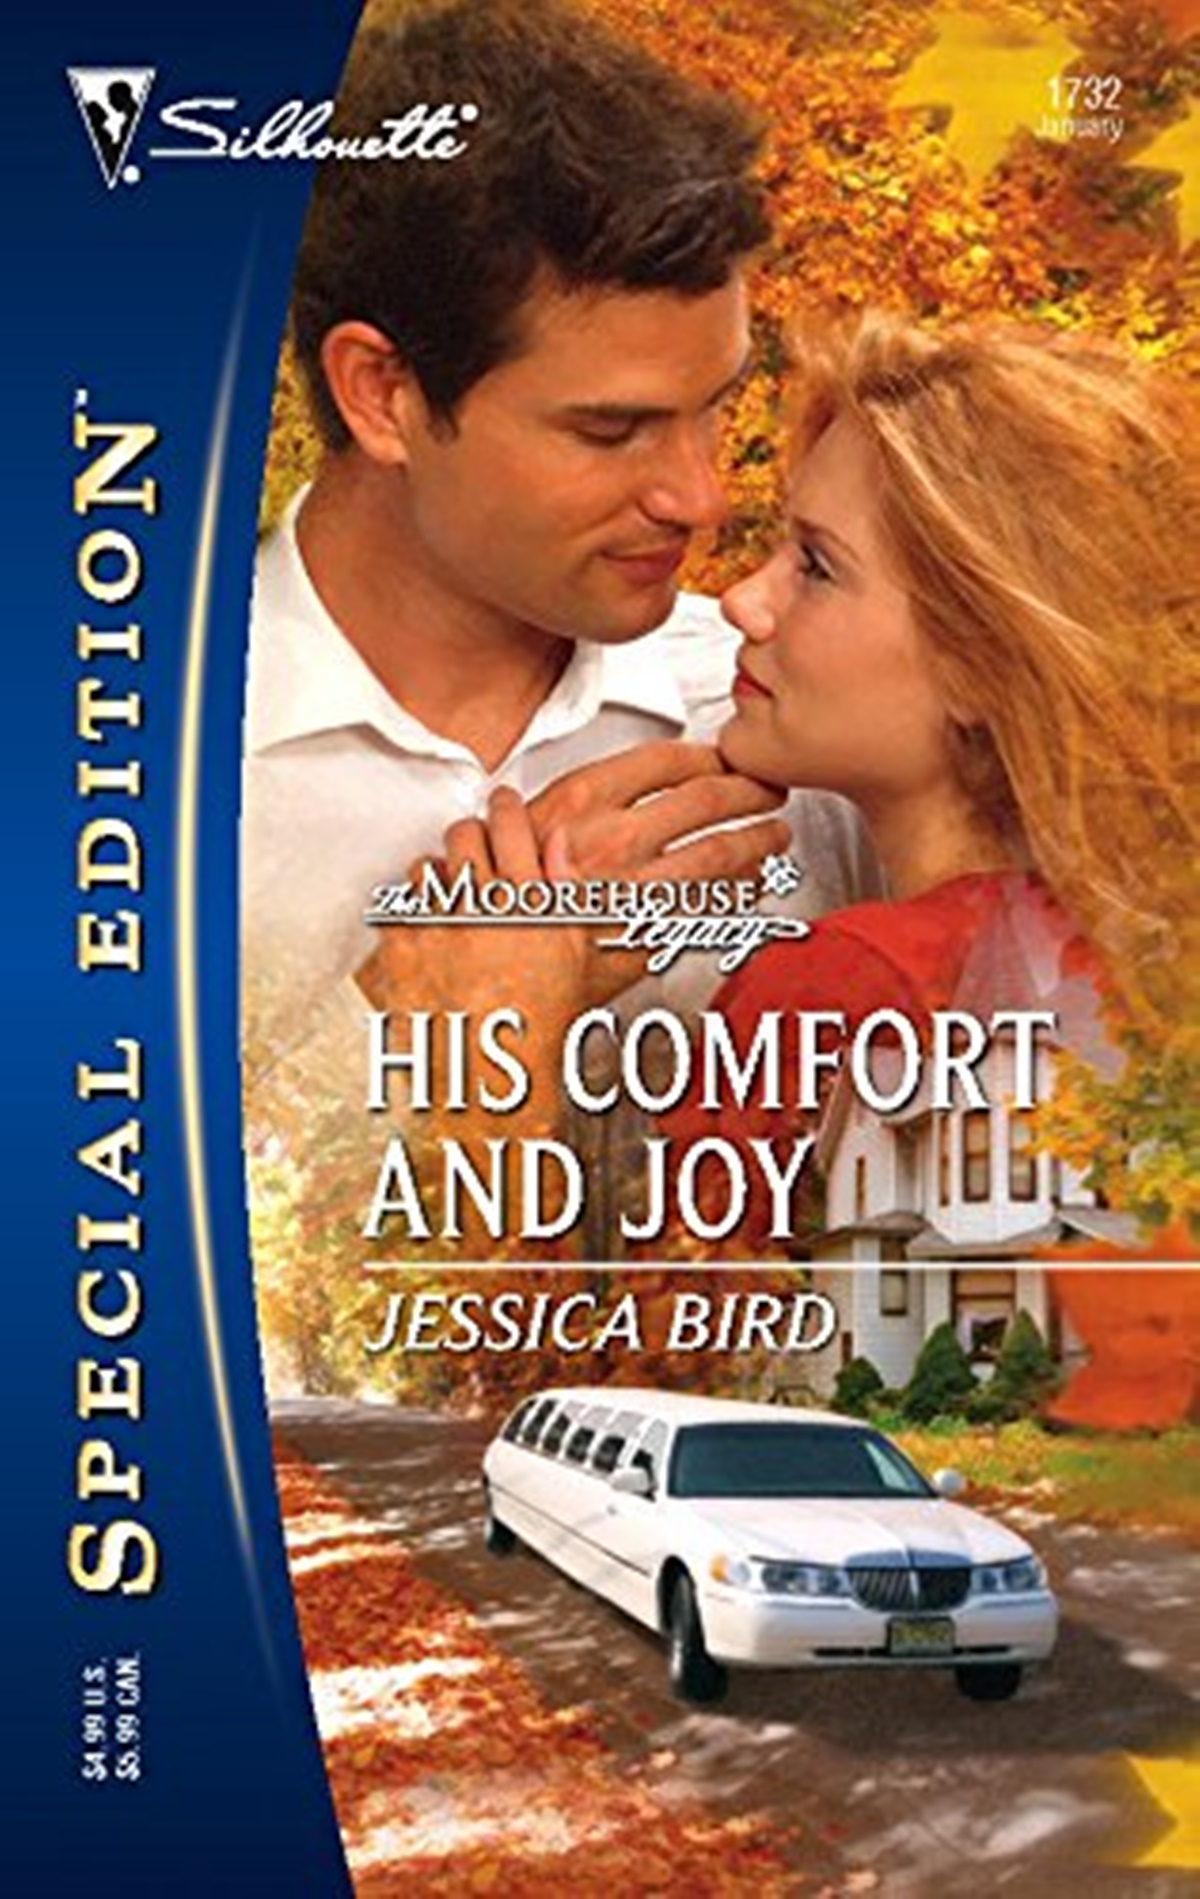 Jessica Bird Books, cover of His Comfort and Joy by Jessica Bird, books